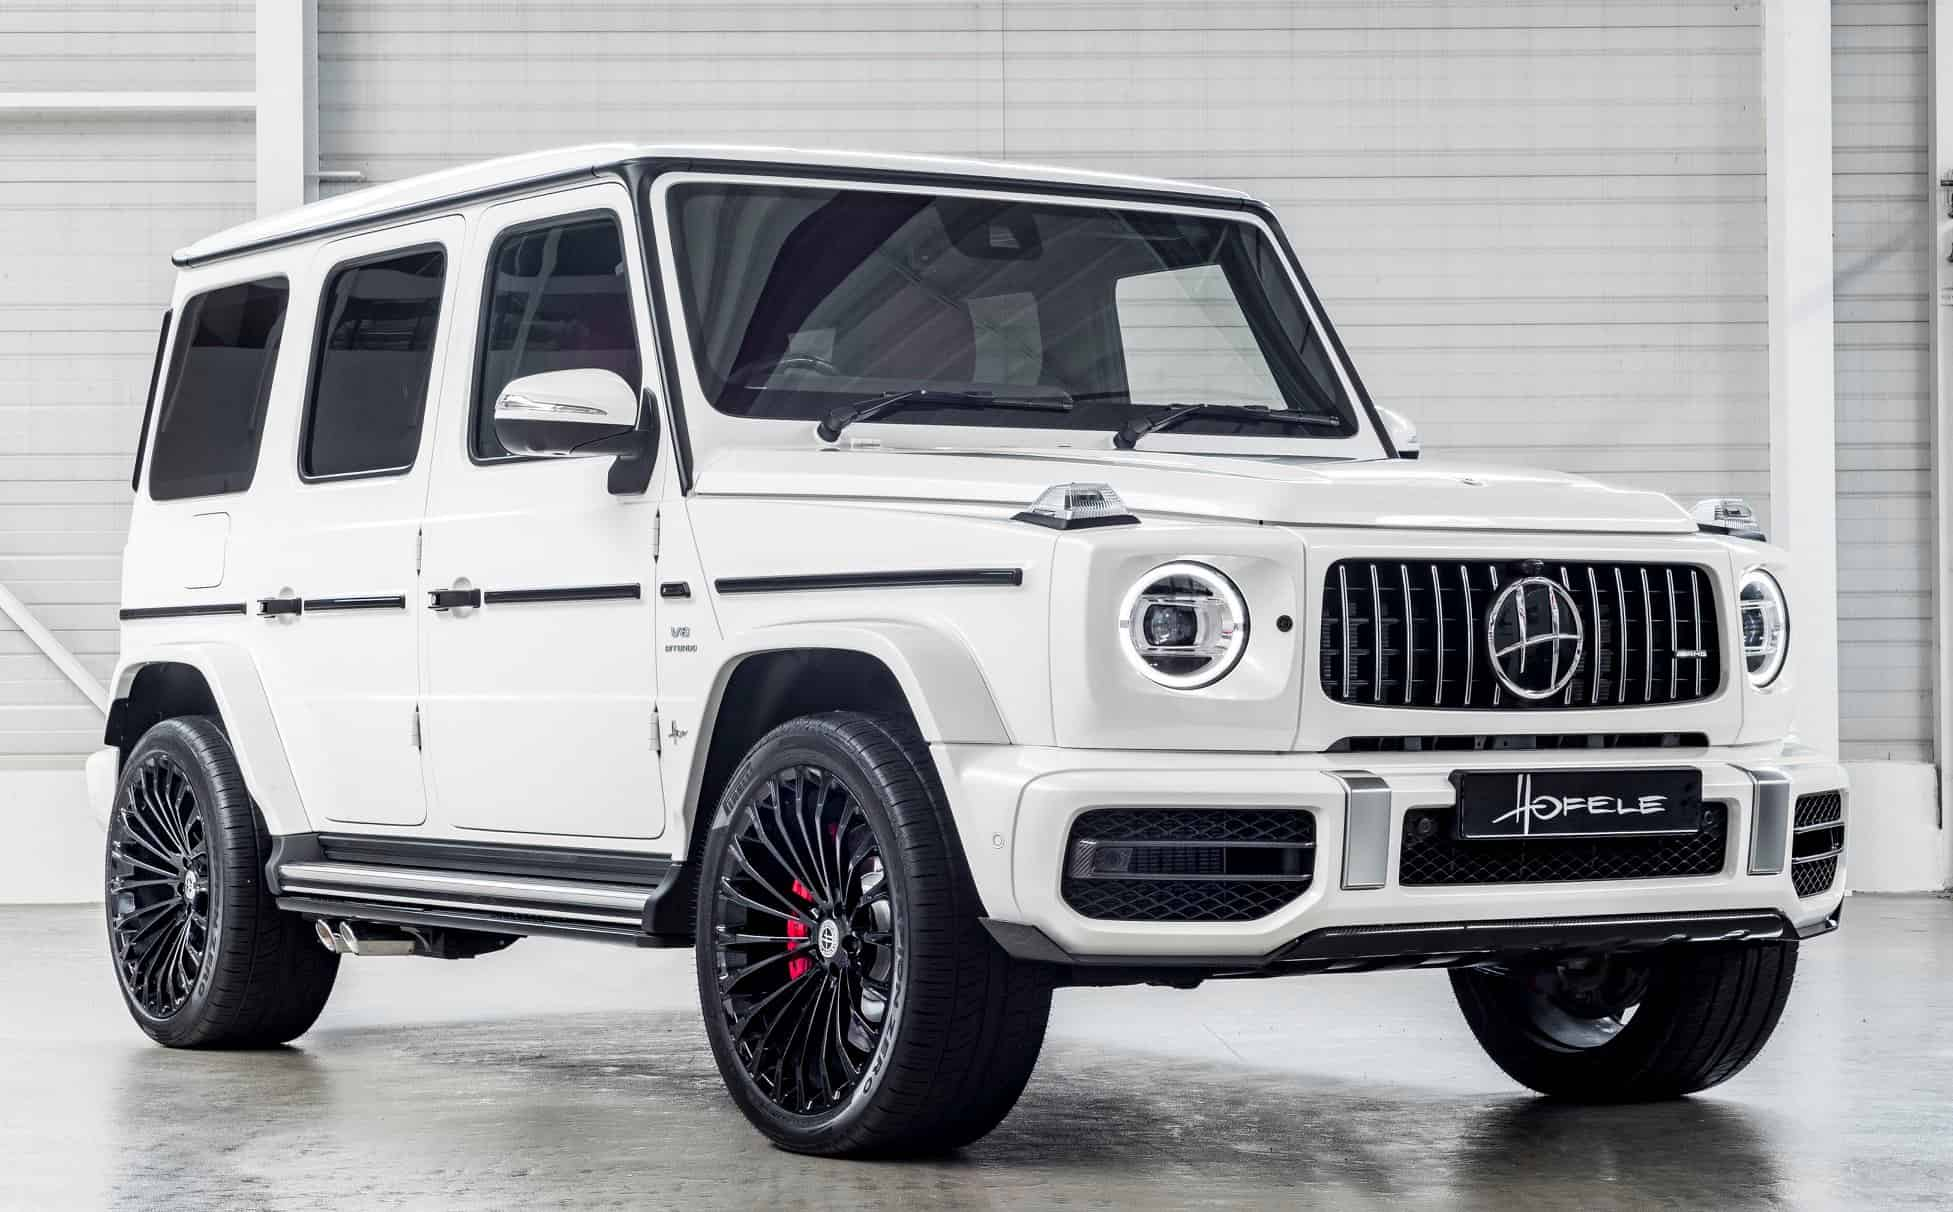 Hofele-Design transforms the Mercedes G63